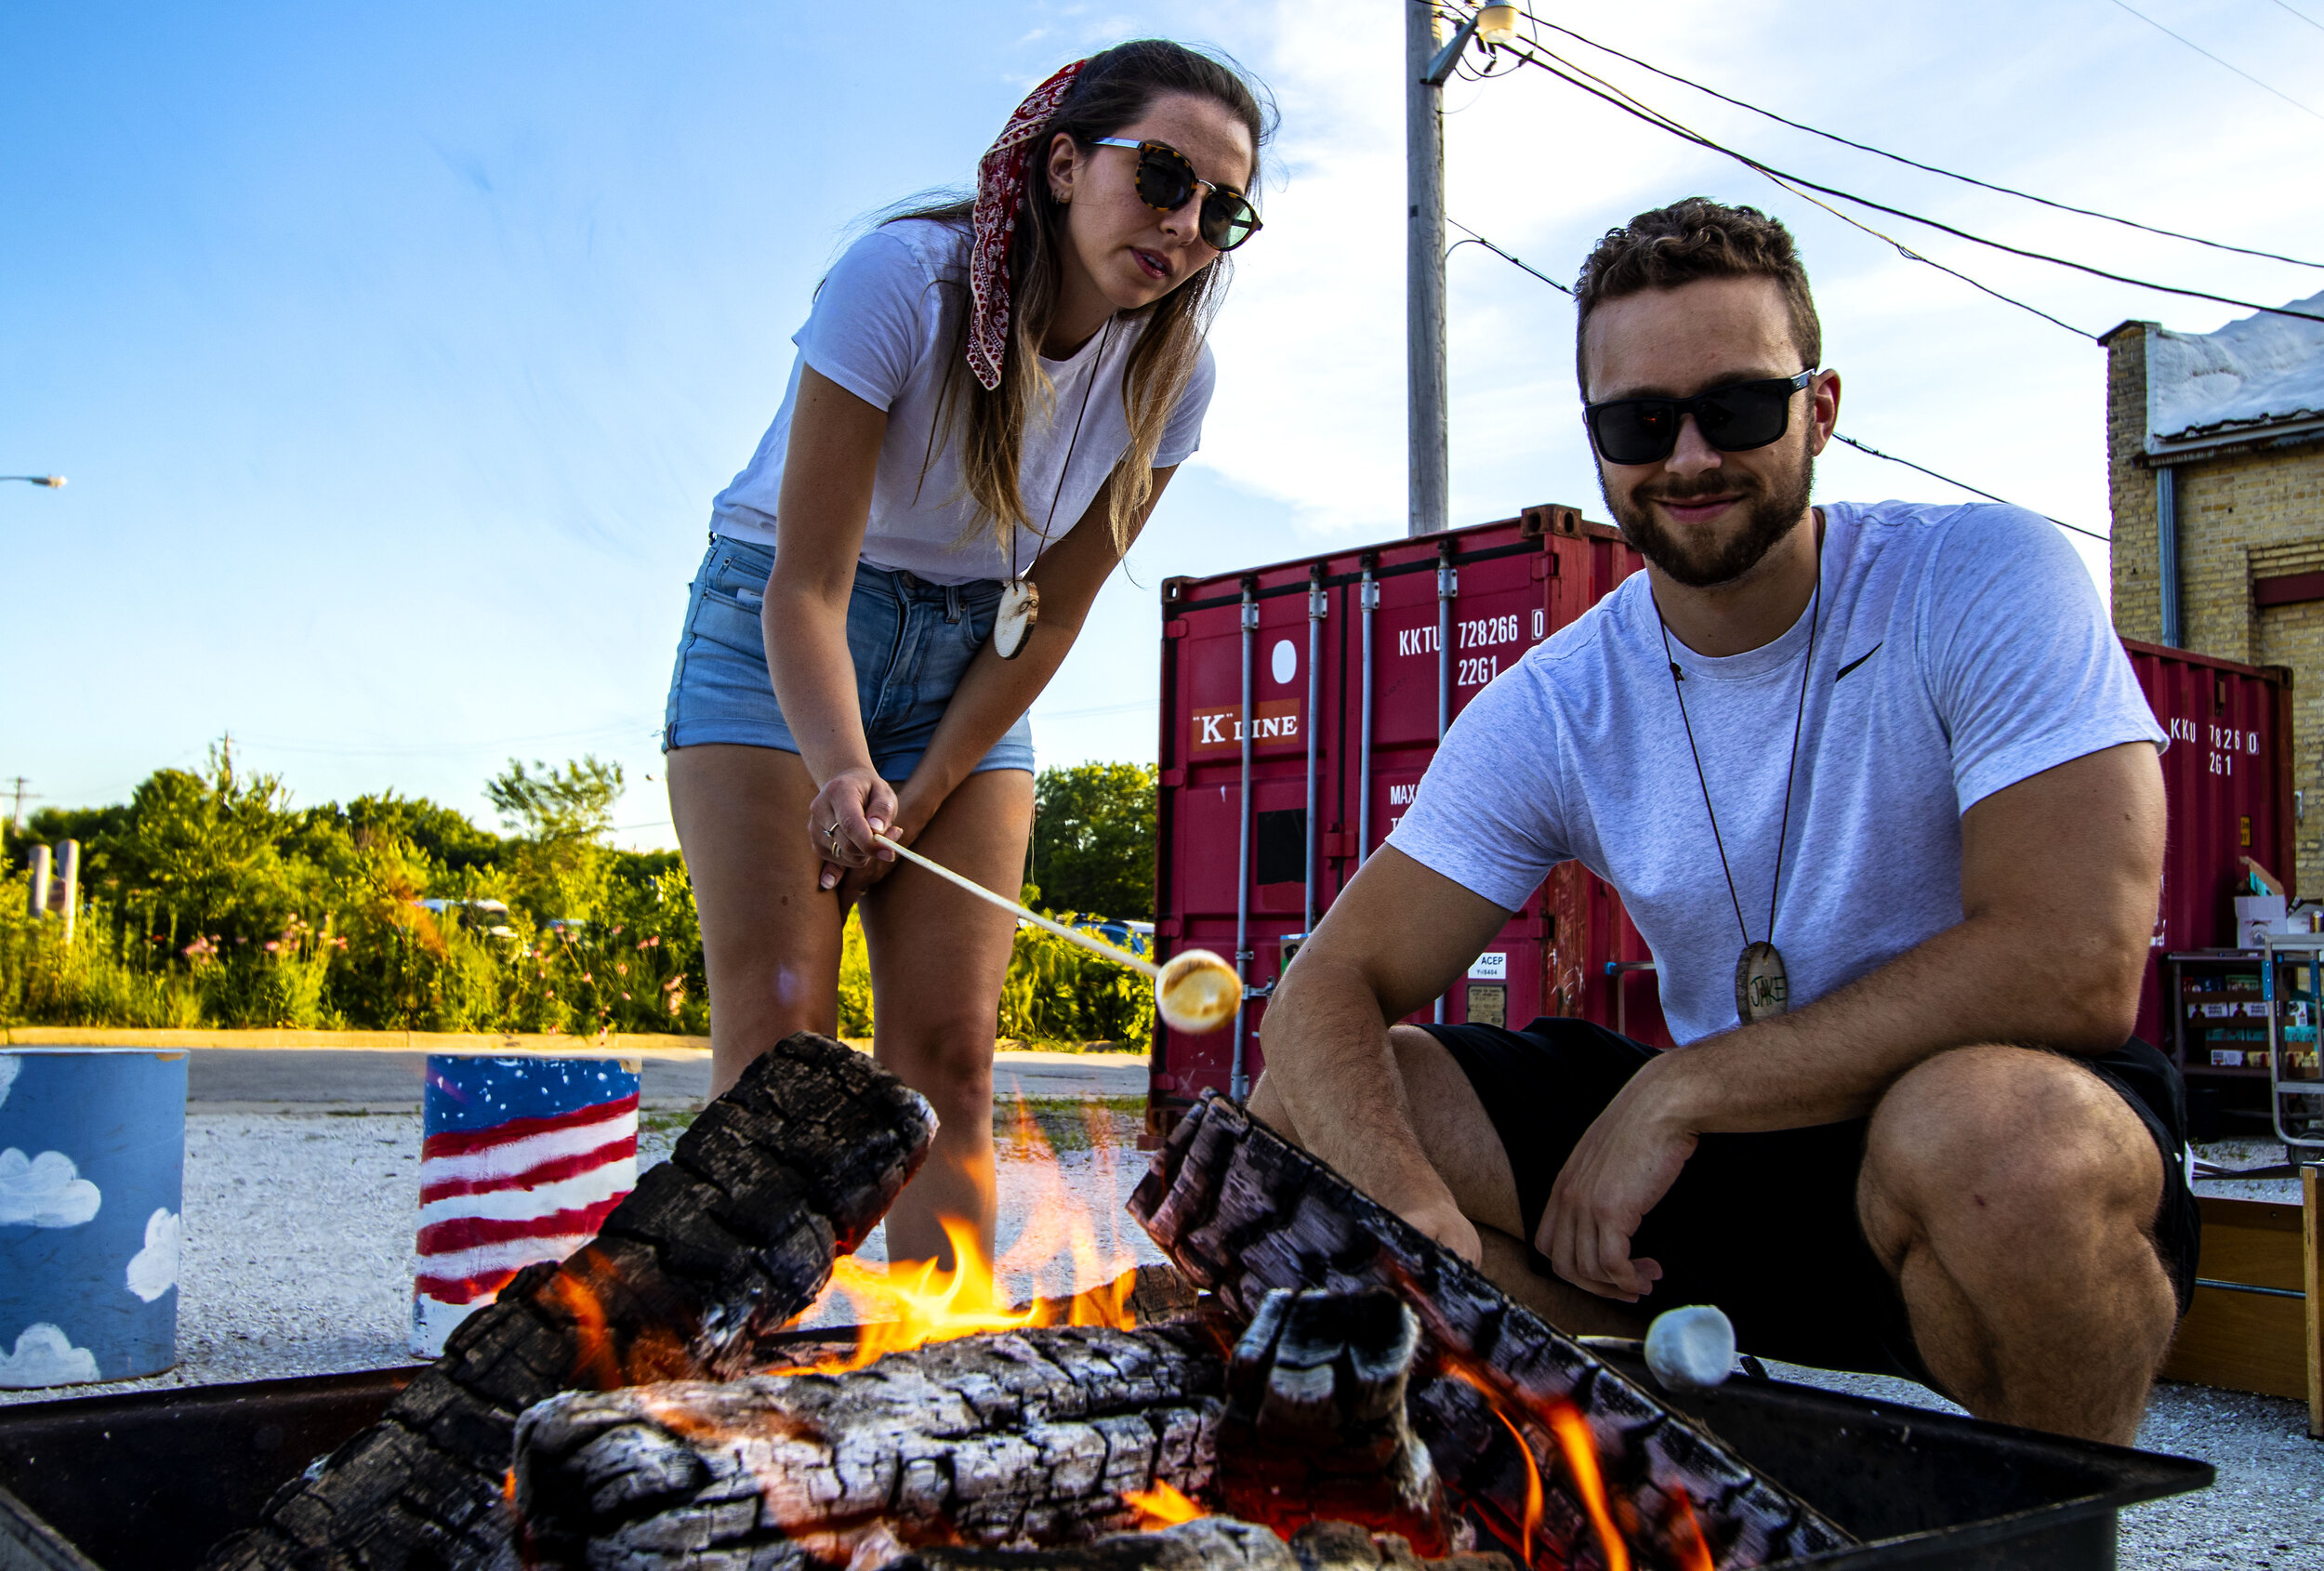 UEC_Grown-Up Summer Camp_Activities_S'mores 2_006_20190712_IMG_9053.jpg